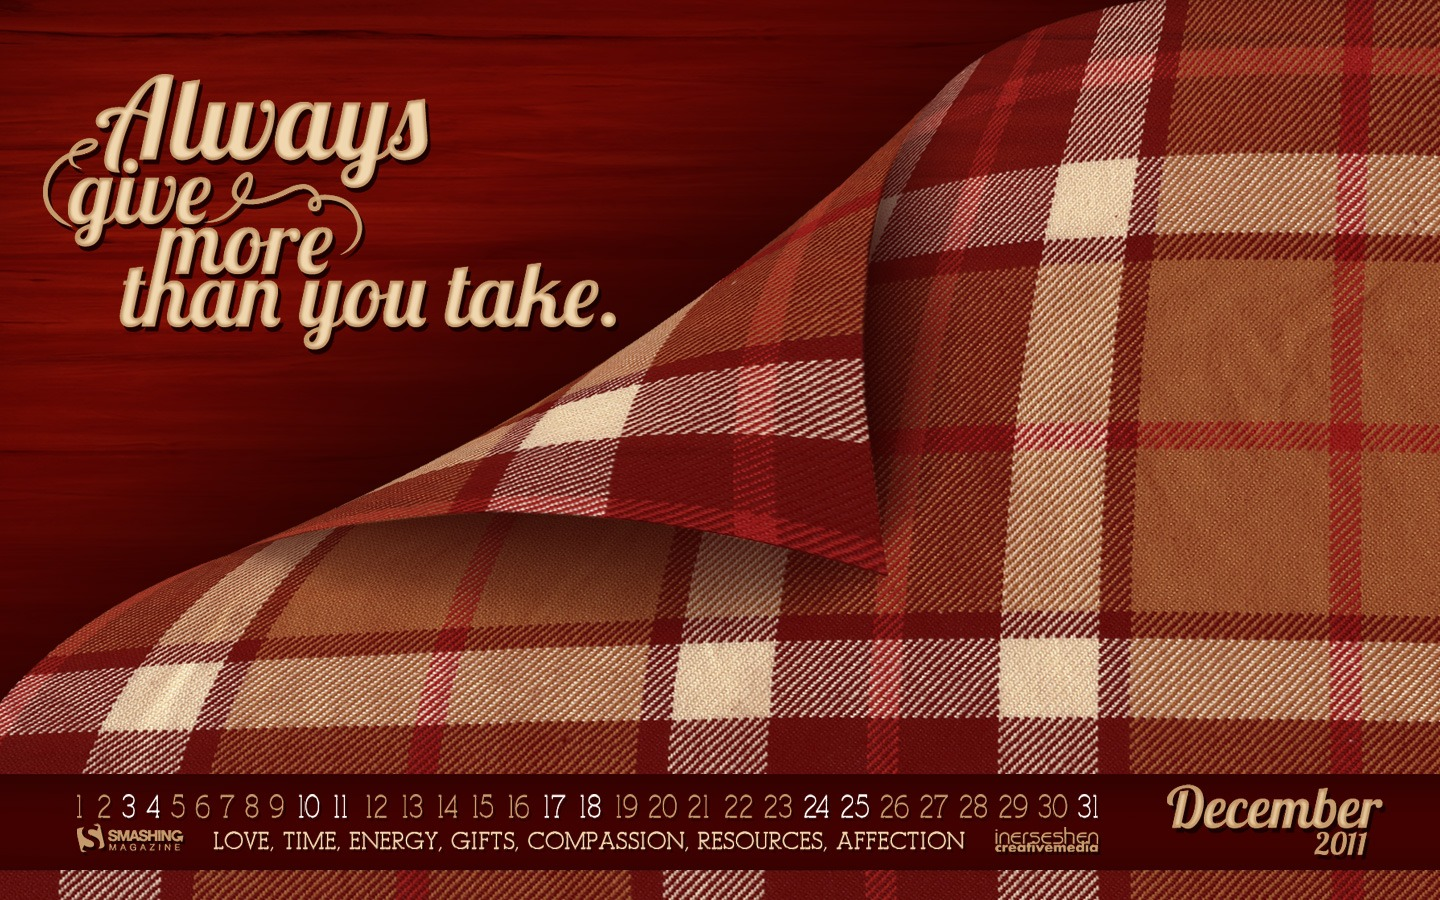 In January Calendar Wallpaper 31259